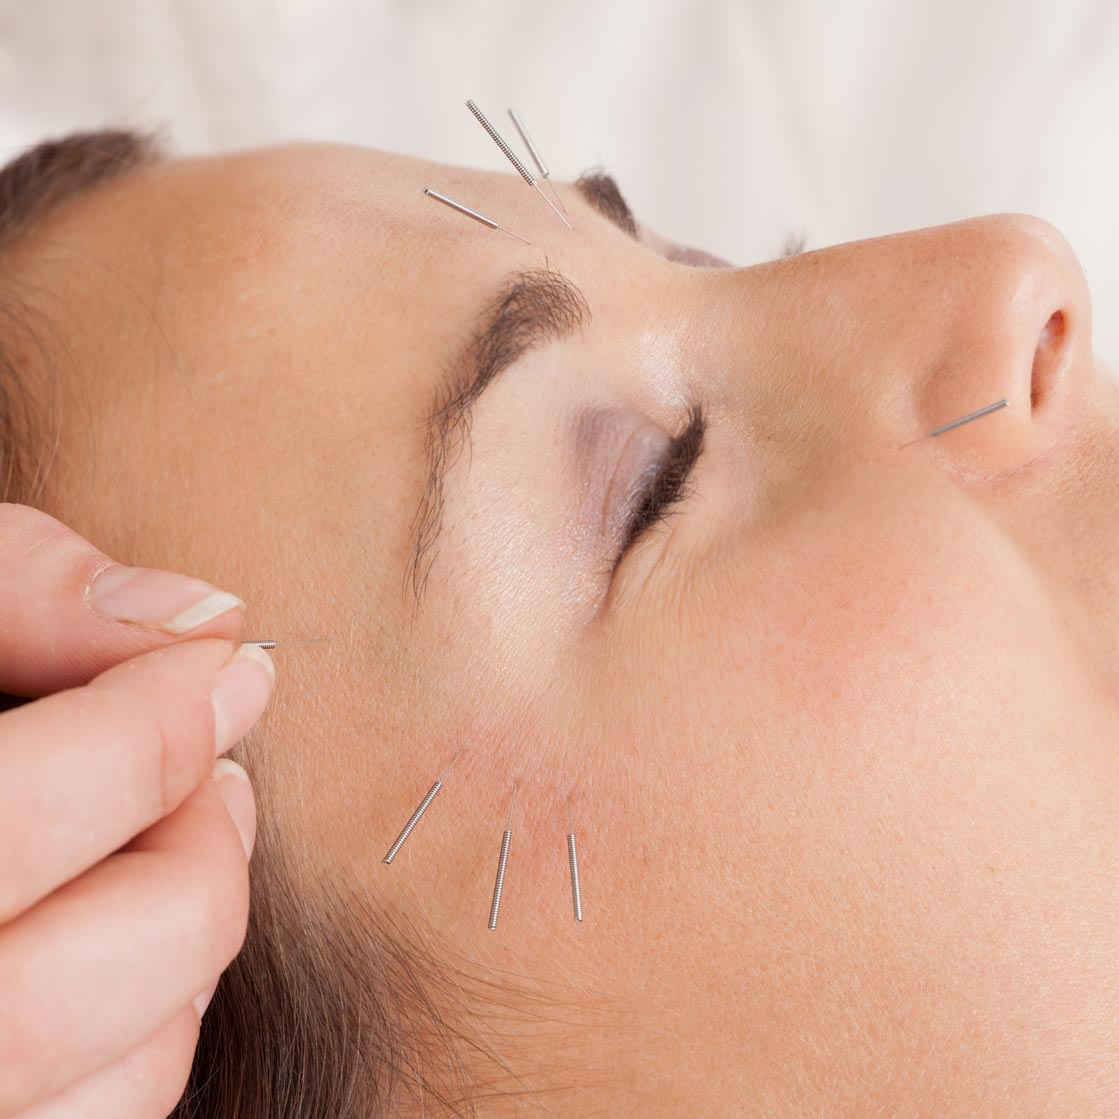 Acupuncture faciale - Acupuncture Maguire